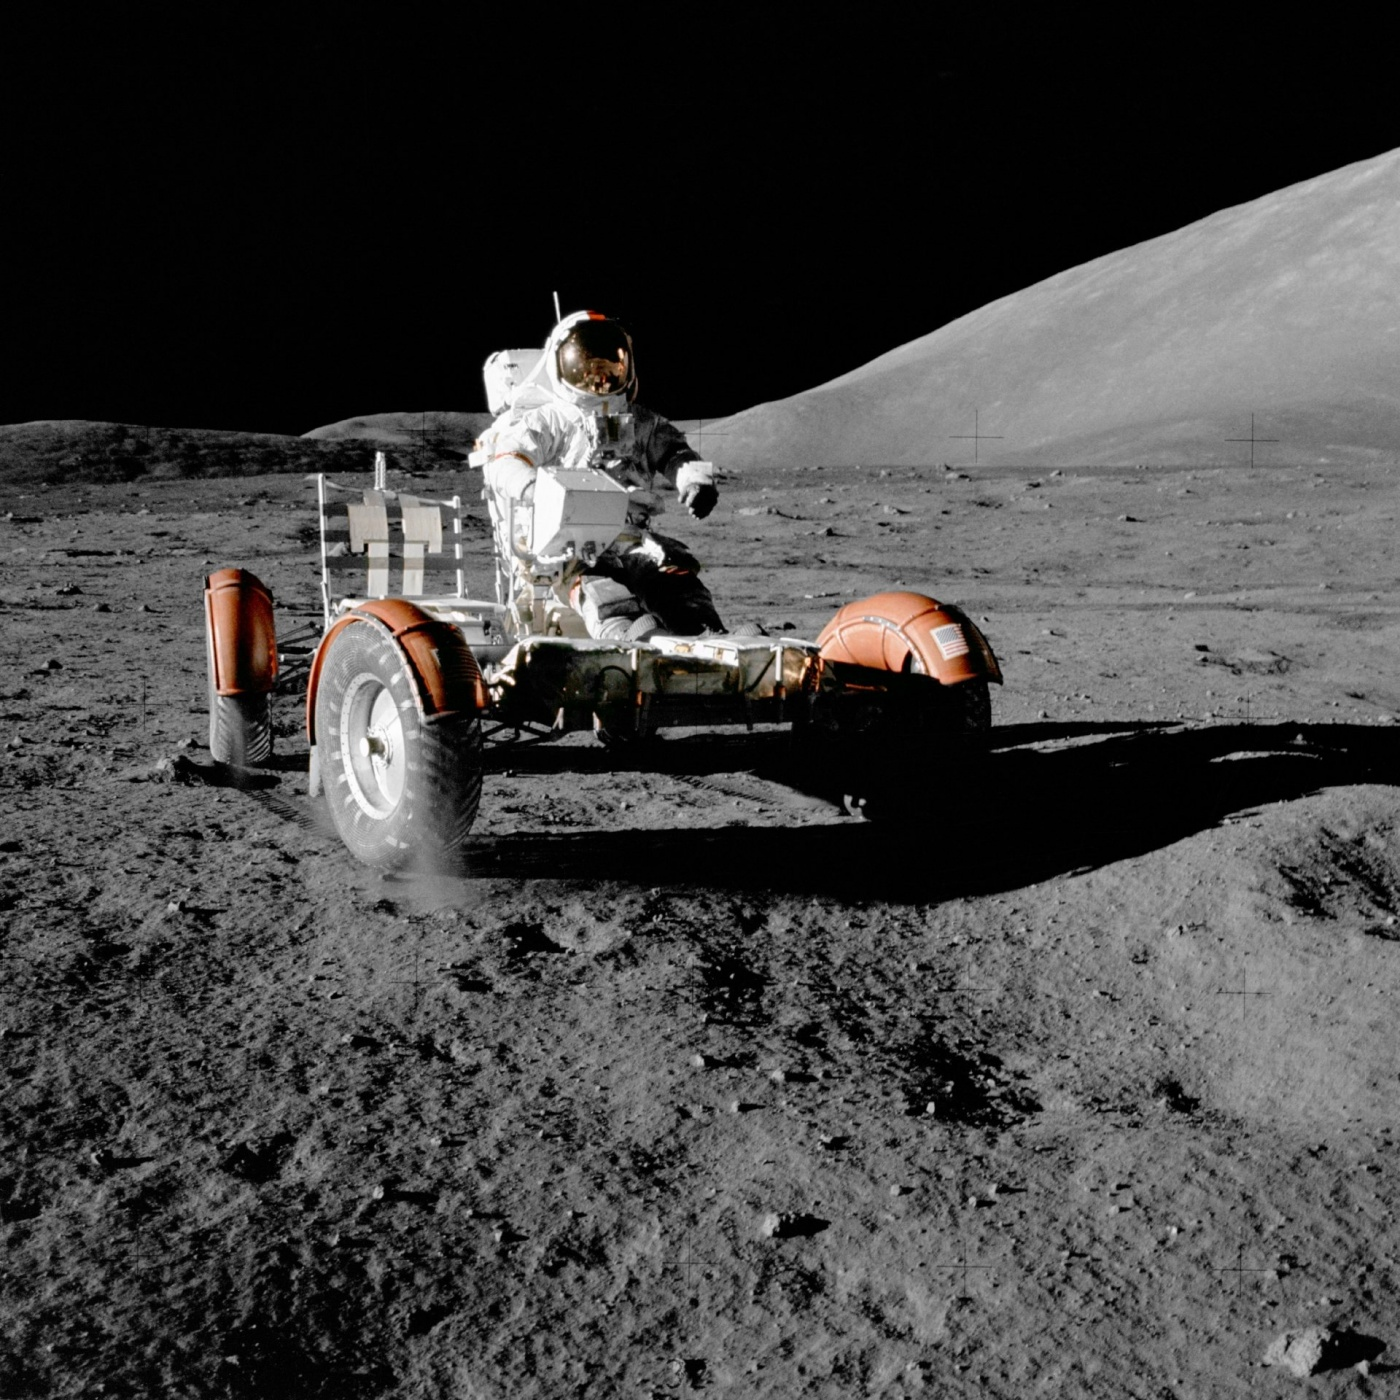 space-cosmonaut-moon-nasa-lunar-roving-vehicle-wallpaper.jpg